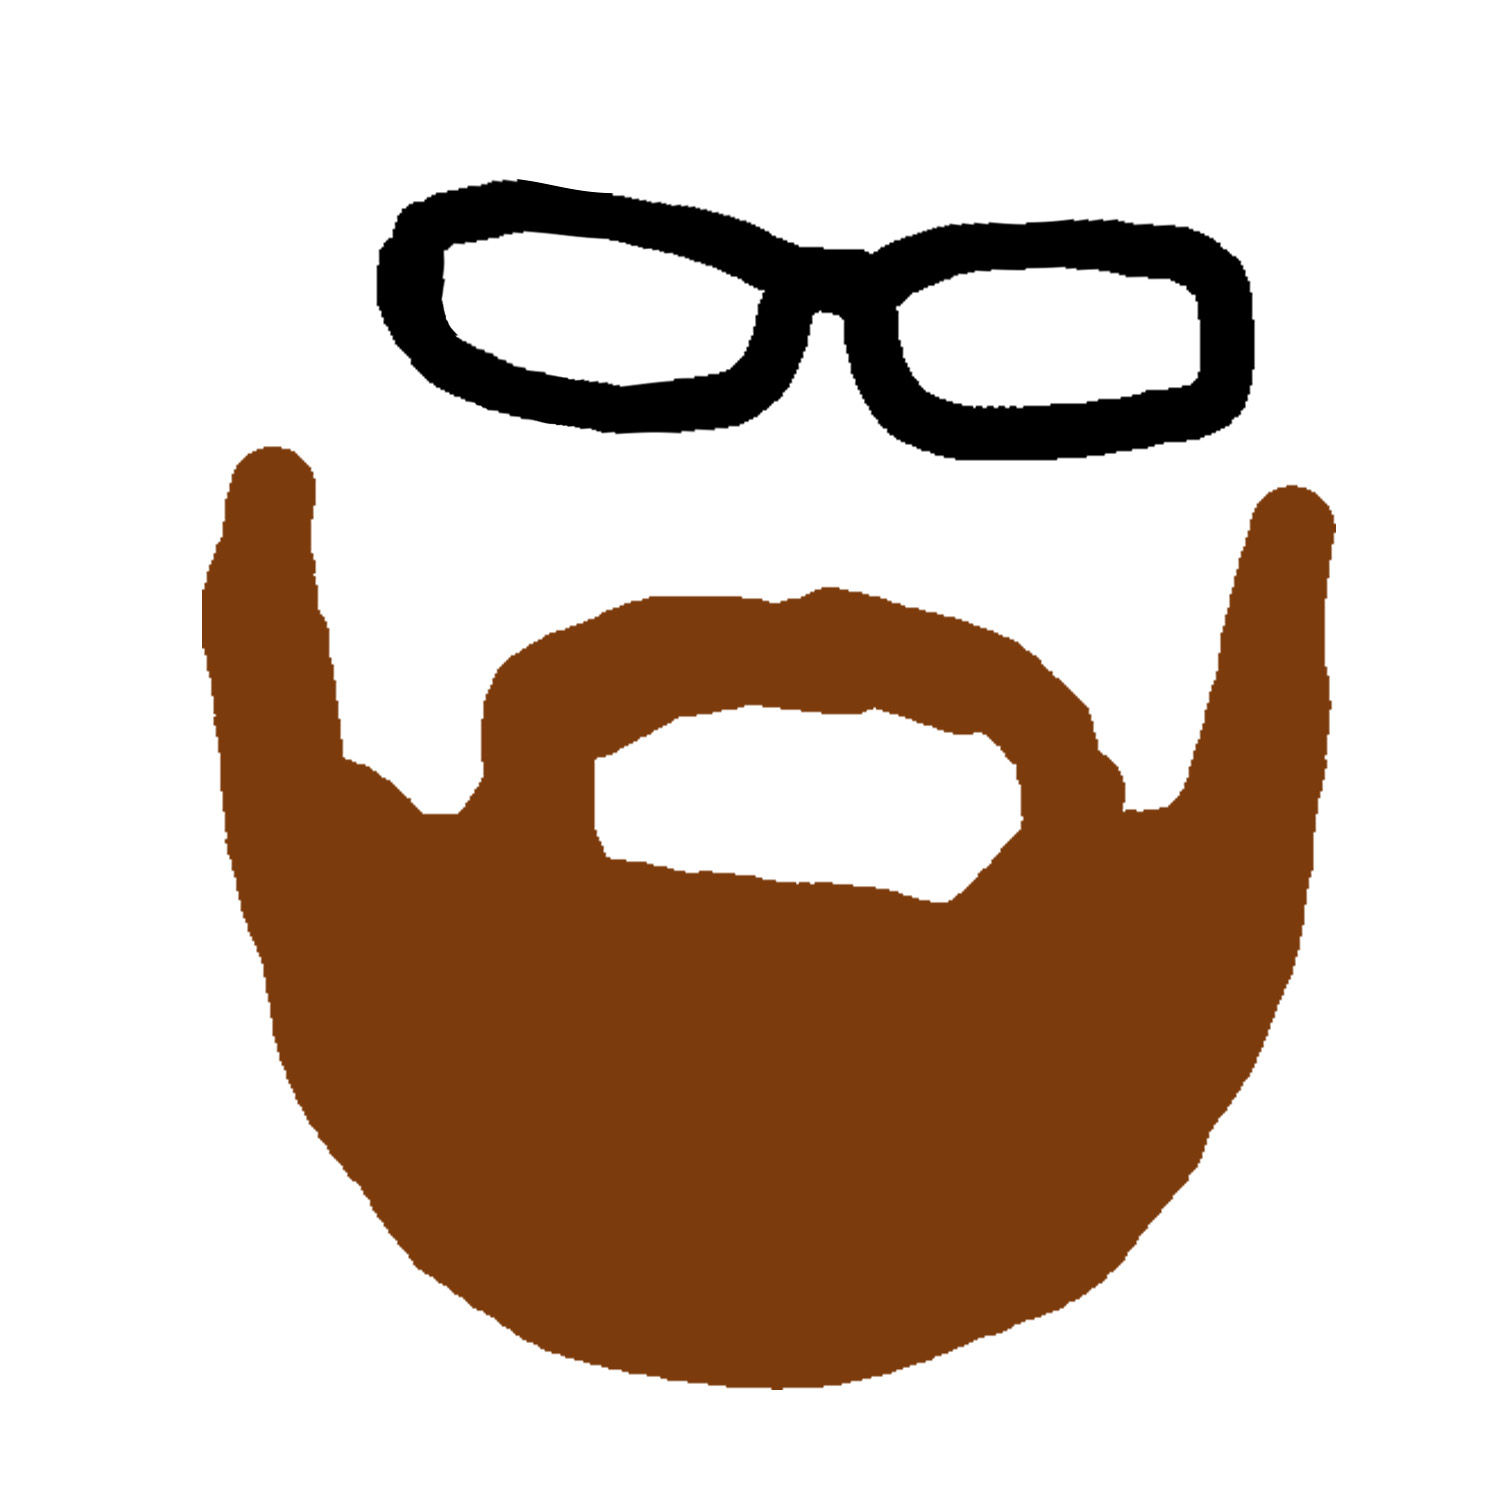 Beard clipart brown beard #8